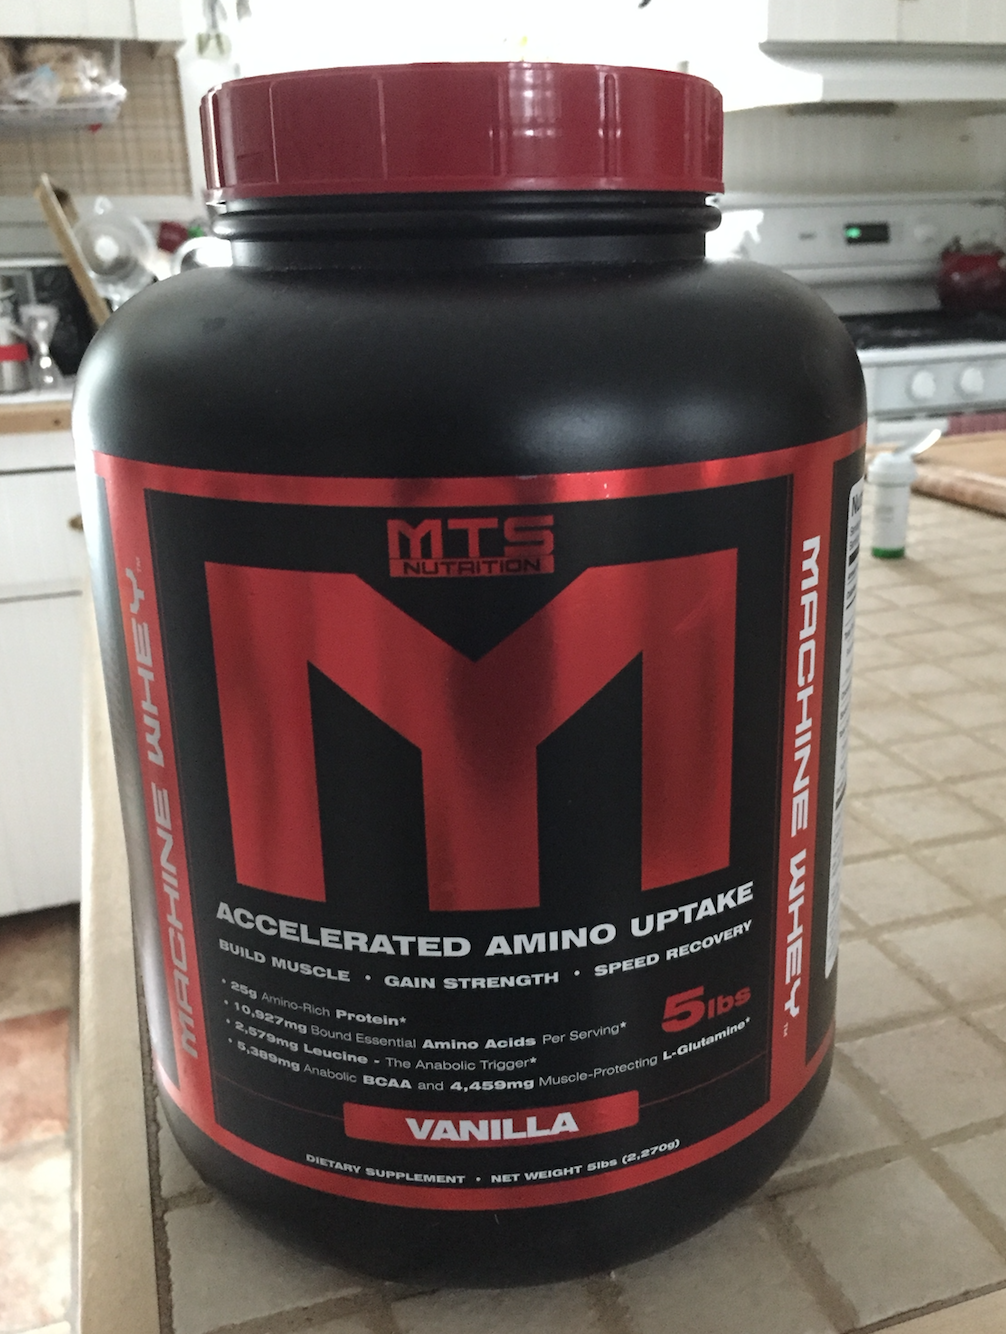 This looks intimidating, but it's really just vanilla protein powder.